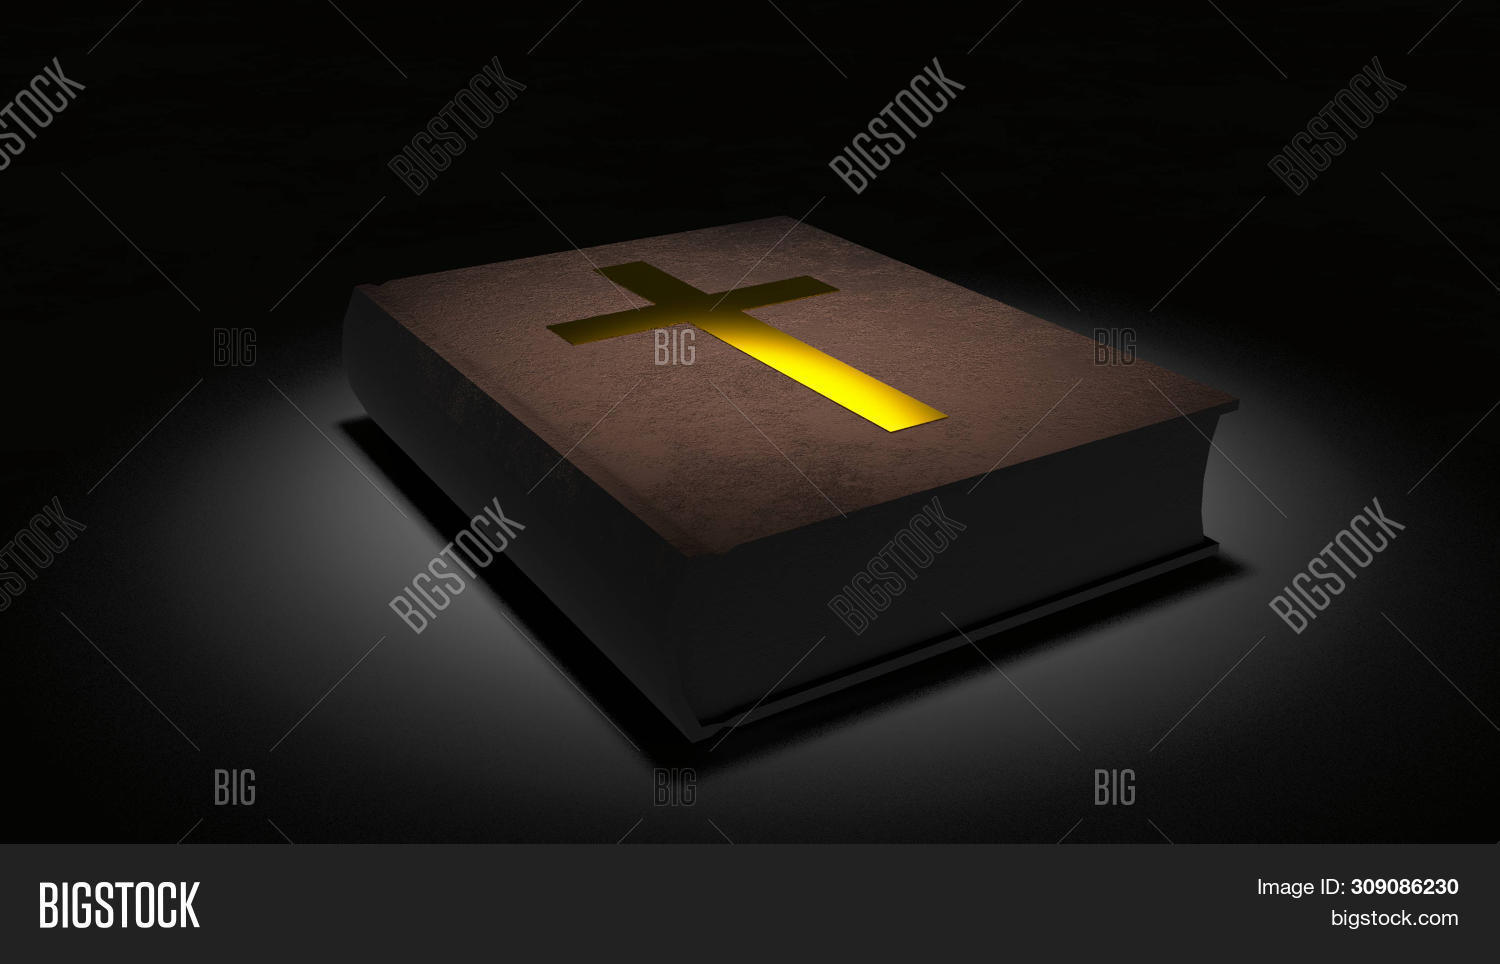 3d rendering,background,belief,bible,black,book,catholic,catholicism,central,christ,christian,christianity,cover,cross,crucifix,dark,design,dream,education,faith,fantasy,god,gold,golden,gospel,holy,icon,library,myth,object,old,page,power,read,religion,religious,sacred,scripture,spiritual,story,study,symbol,symbolic,tale,testament,wisdom,word,worship,writing,yellow